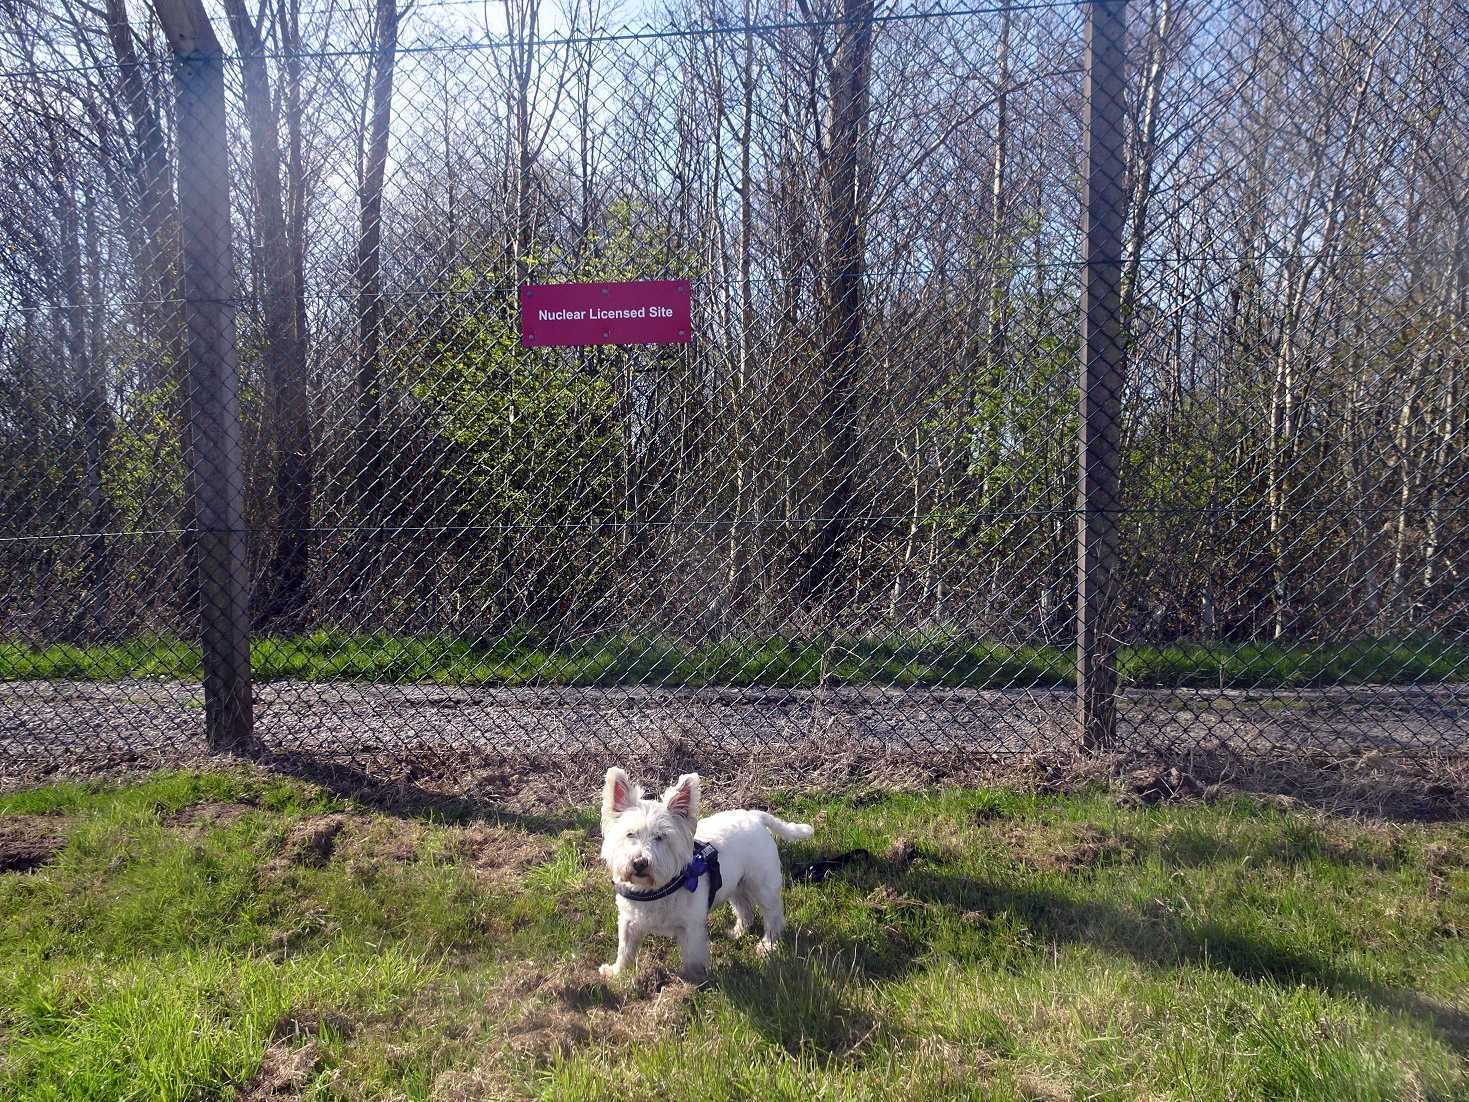 poppy the westie at the nuclear dump